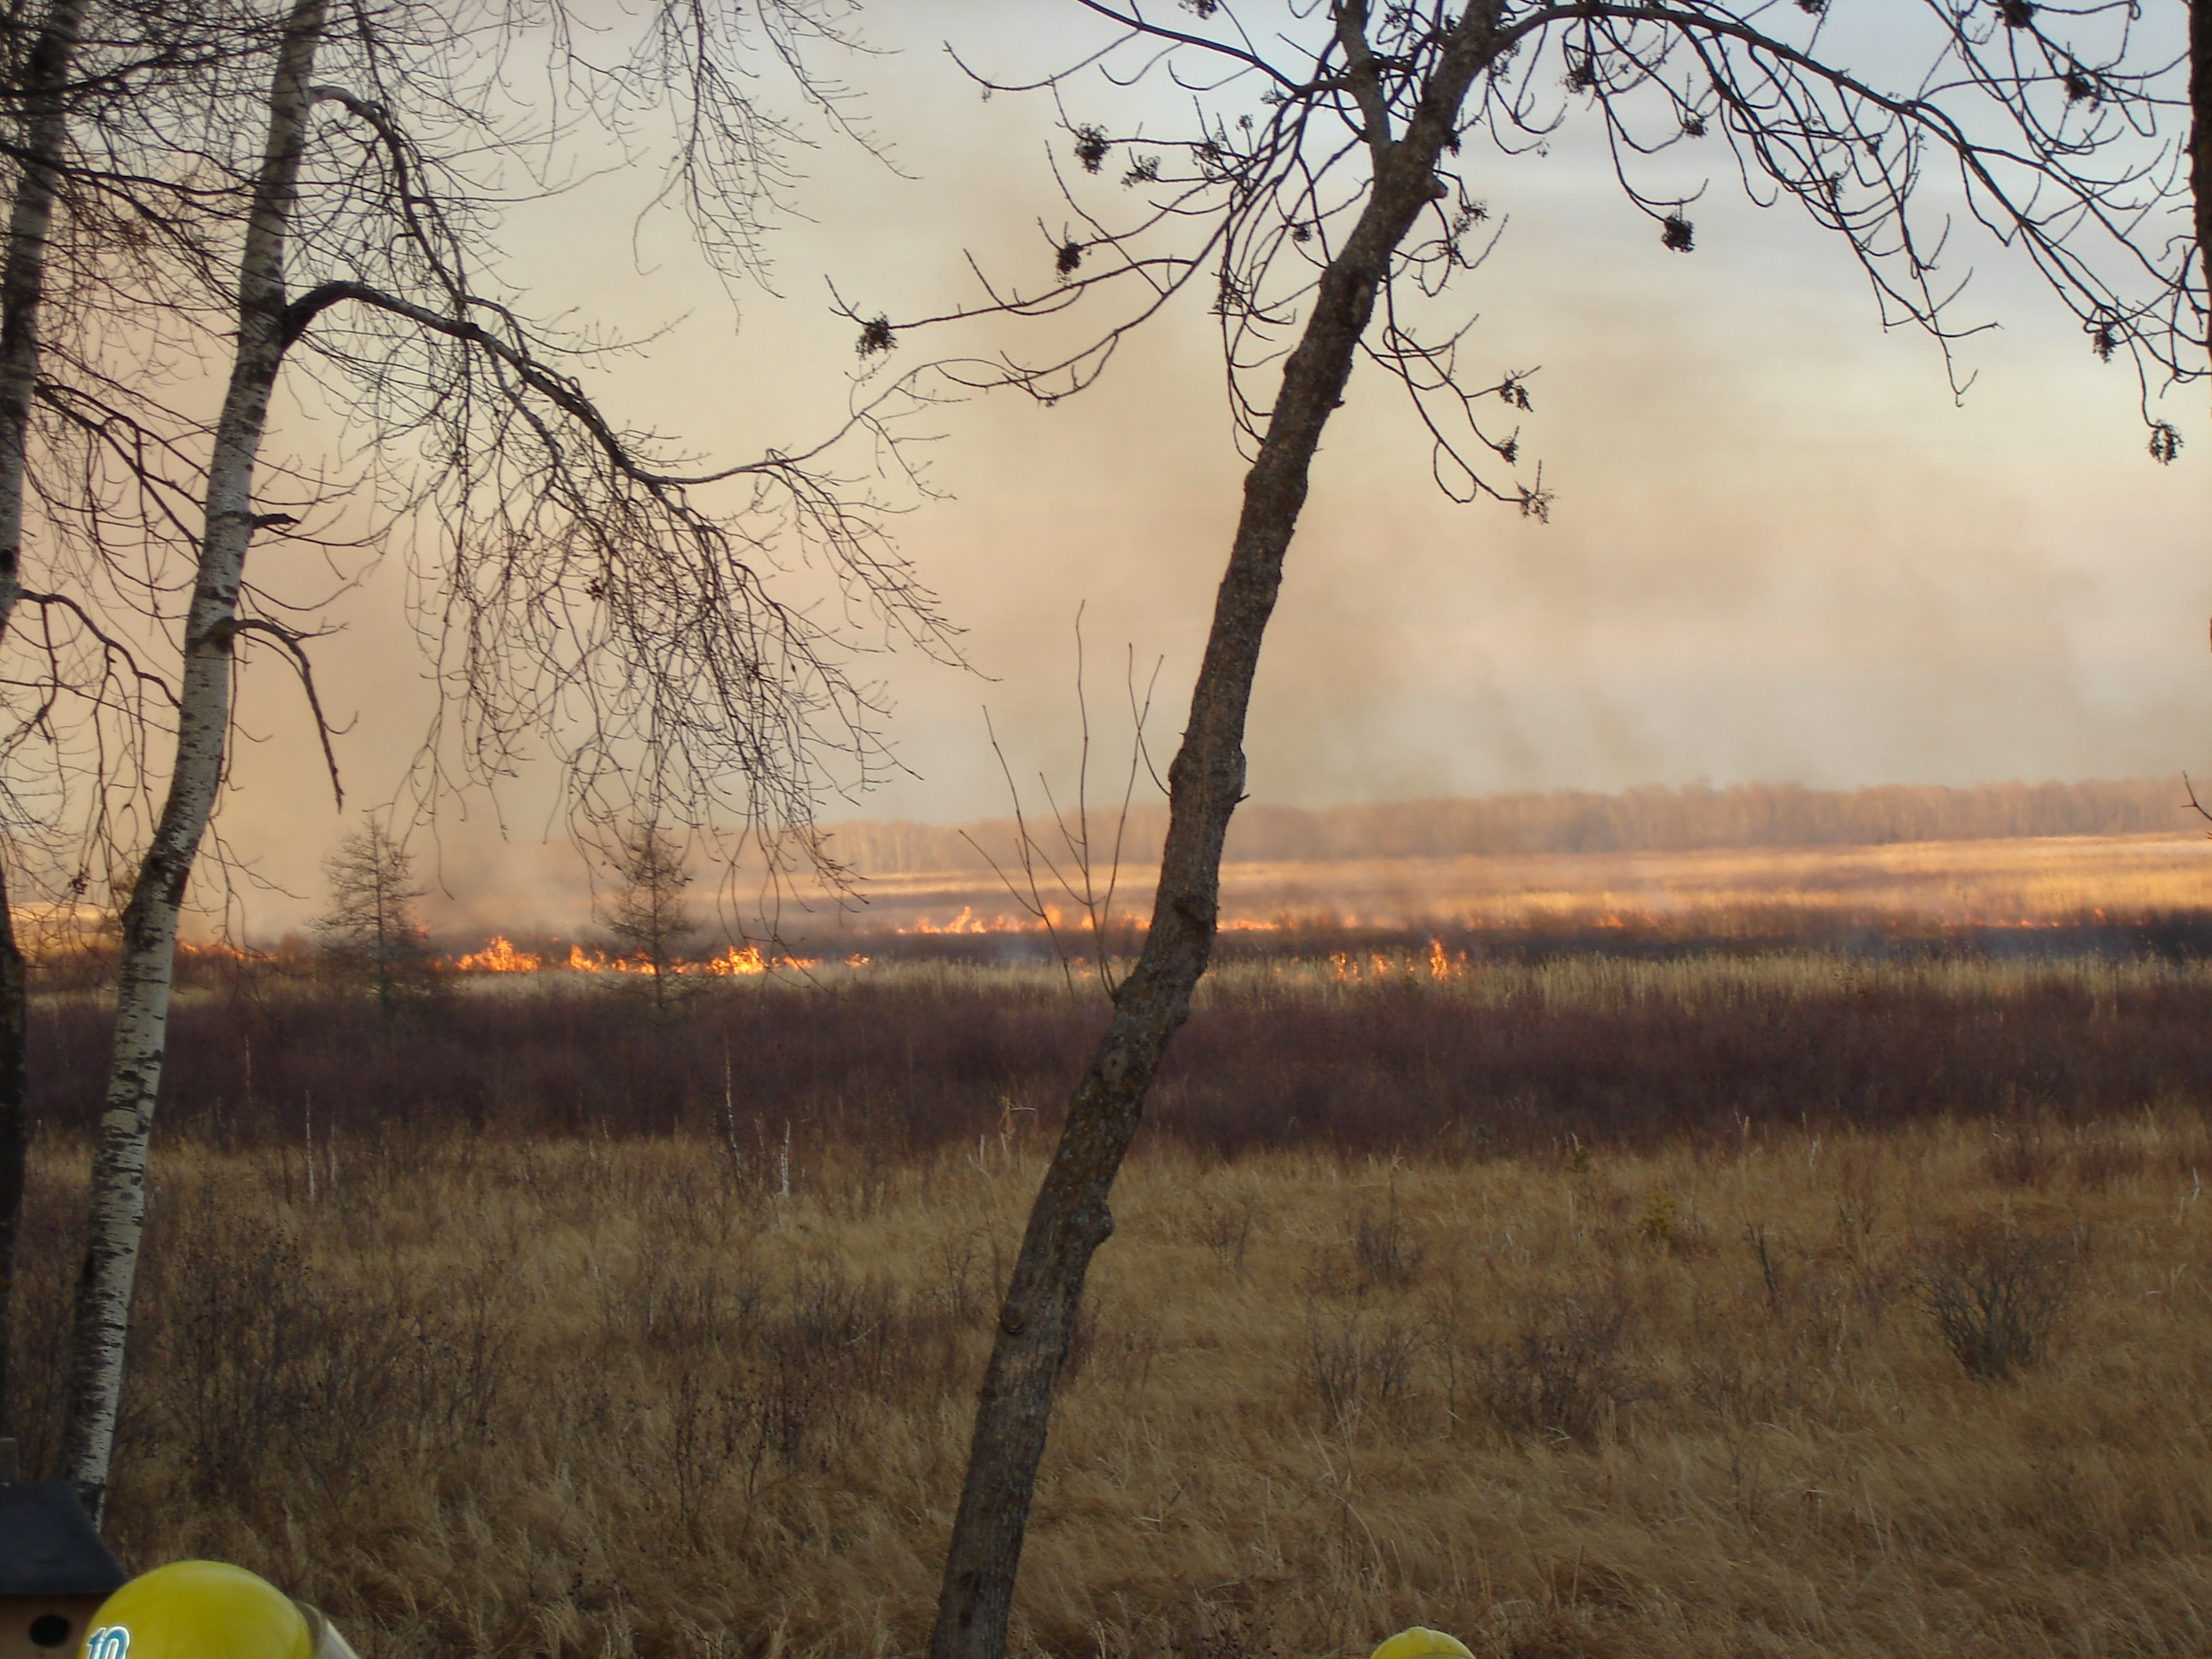 A hundred acre cattail fire by Steamboat Bay at Leech Lake on January 17, 2007.